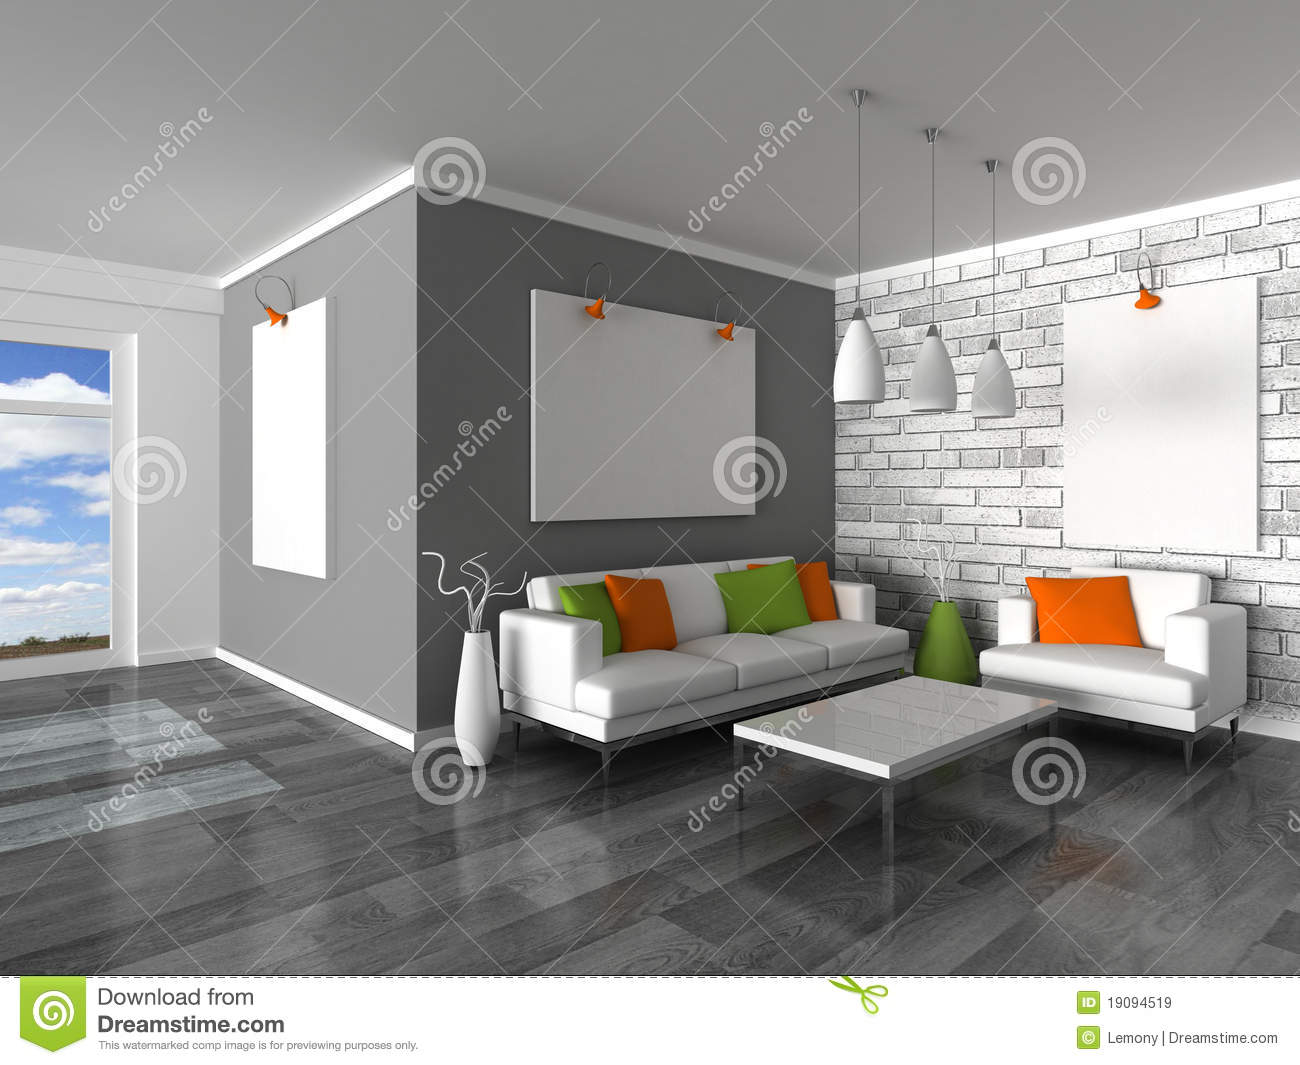 int rieur de la salle moderne du mur gris et du s blanc images libres de droits image 19094519. Black Bedroom Furniture Sets. Home Design Ideas